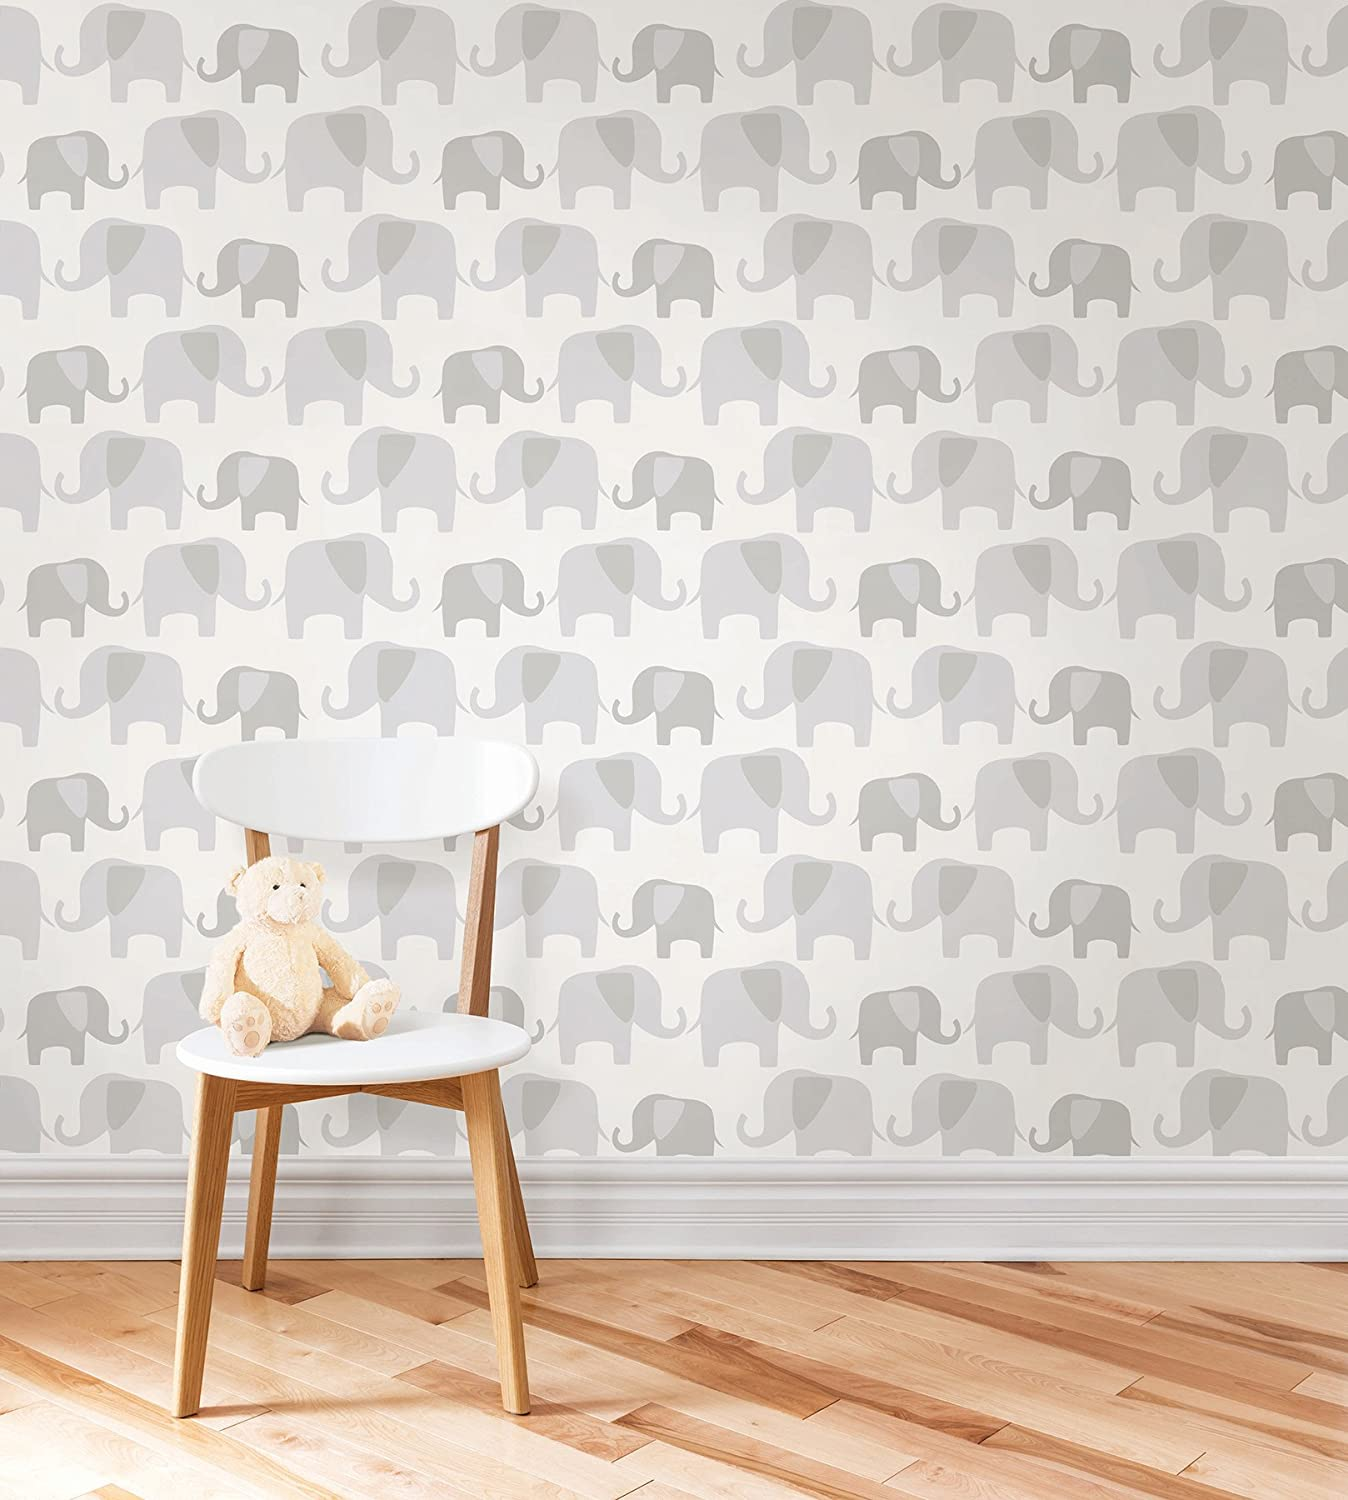 Great Amazon.com: Wall Pops NU1405 Gray Elephant Parade Peel And Stick Wallpaper:  Home Improvement